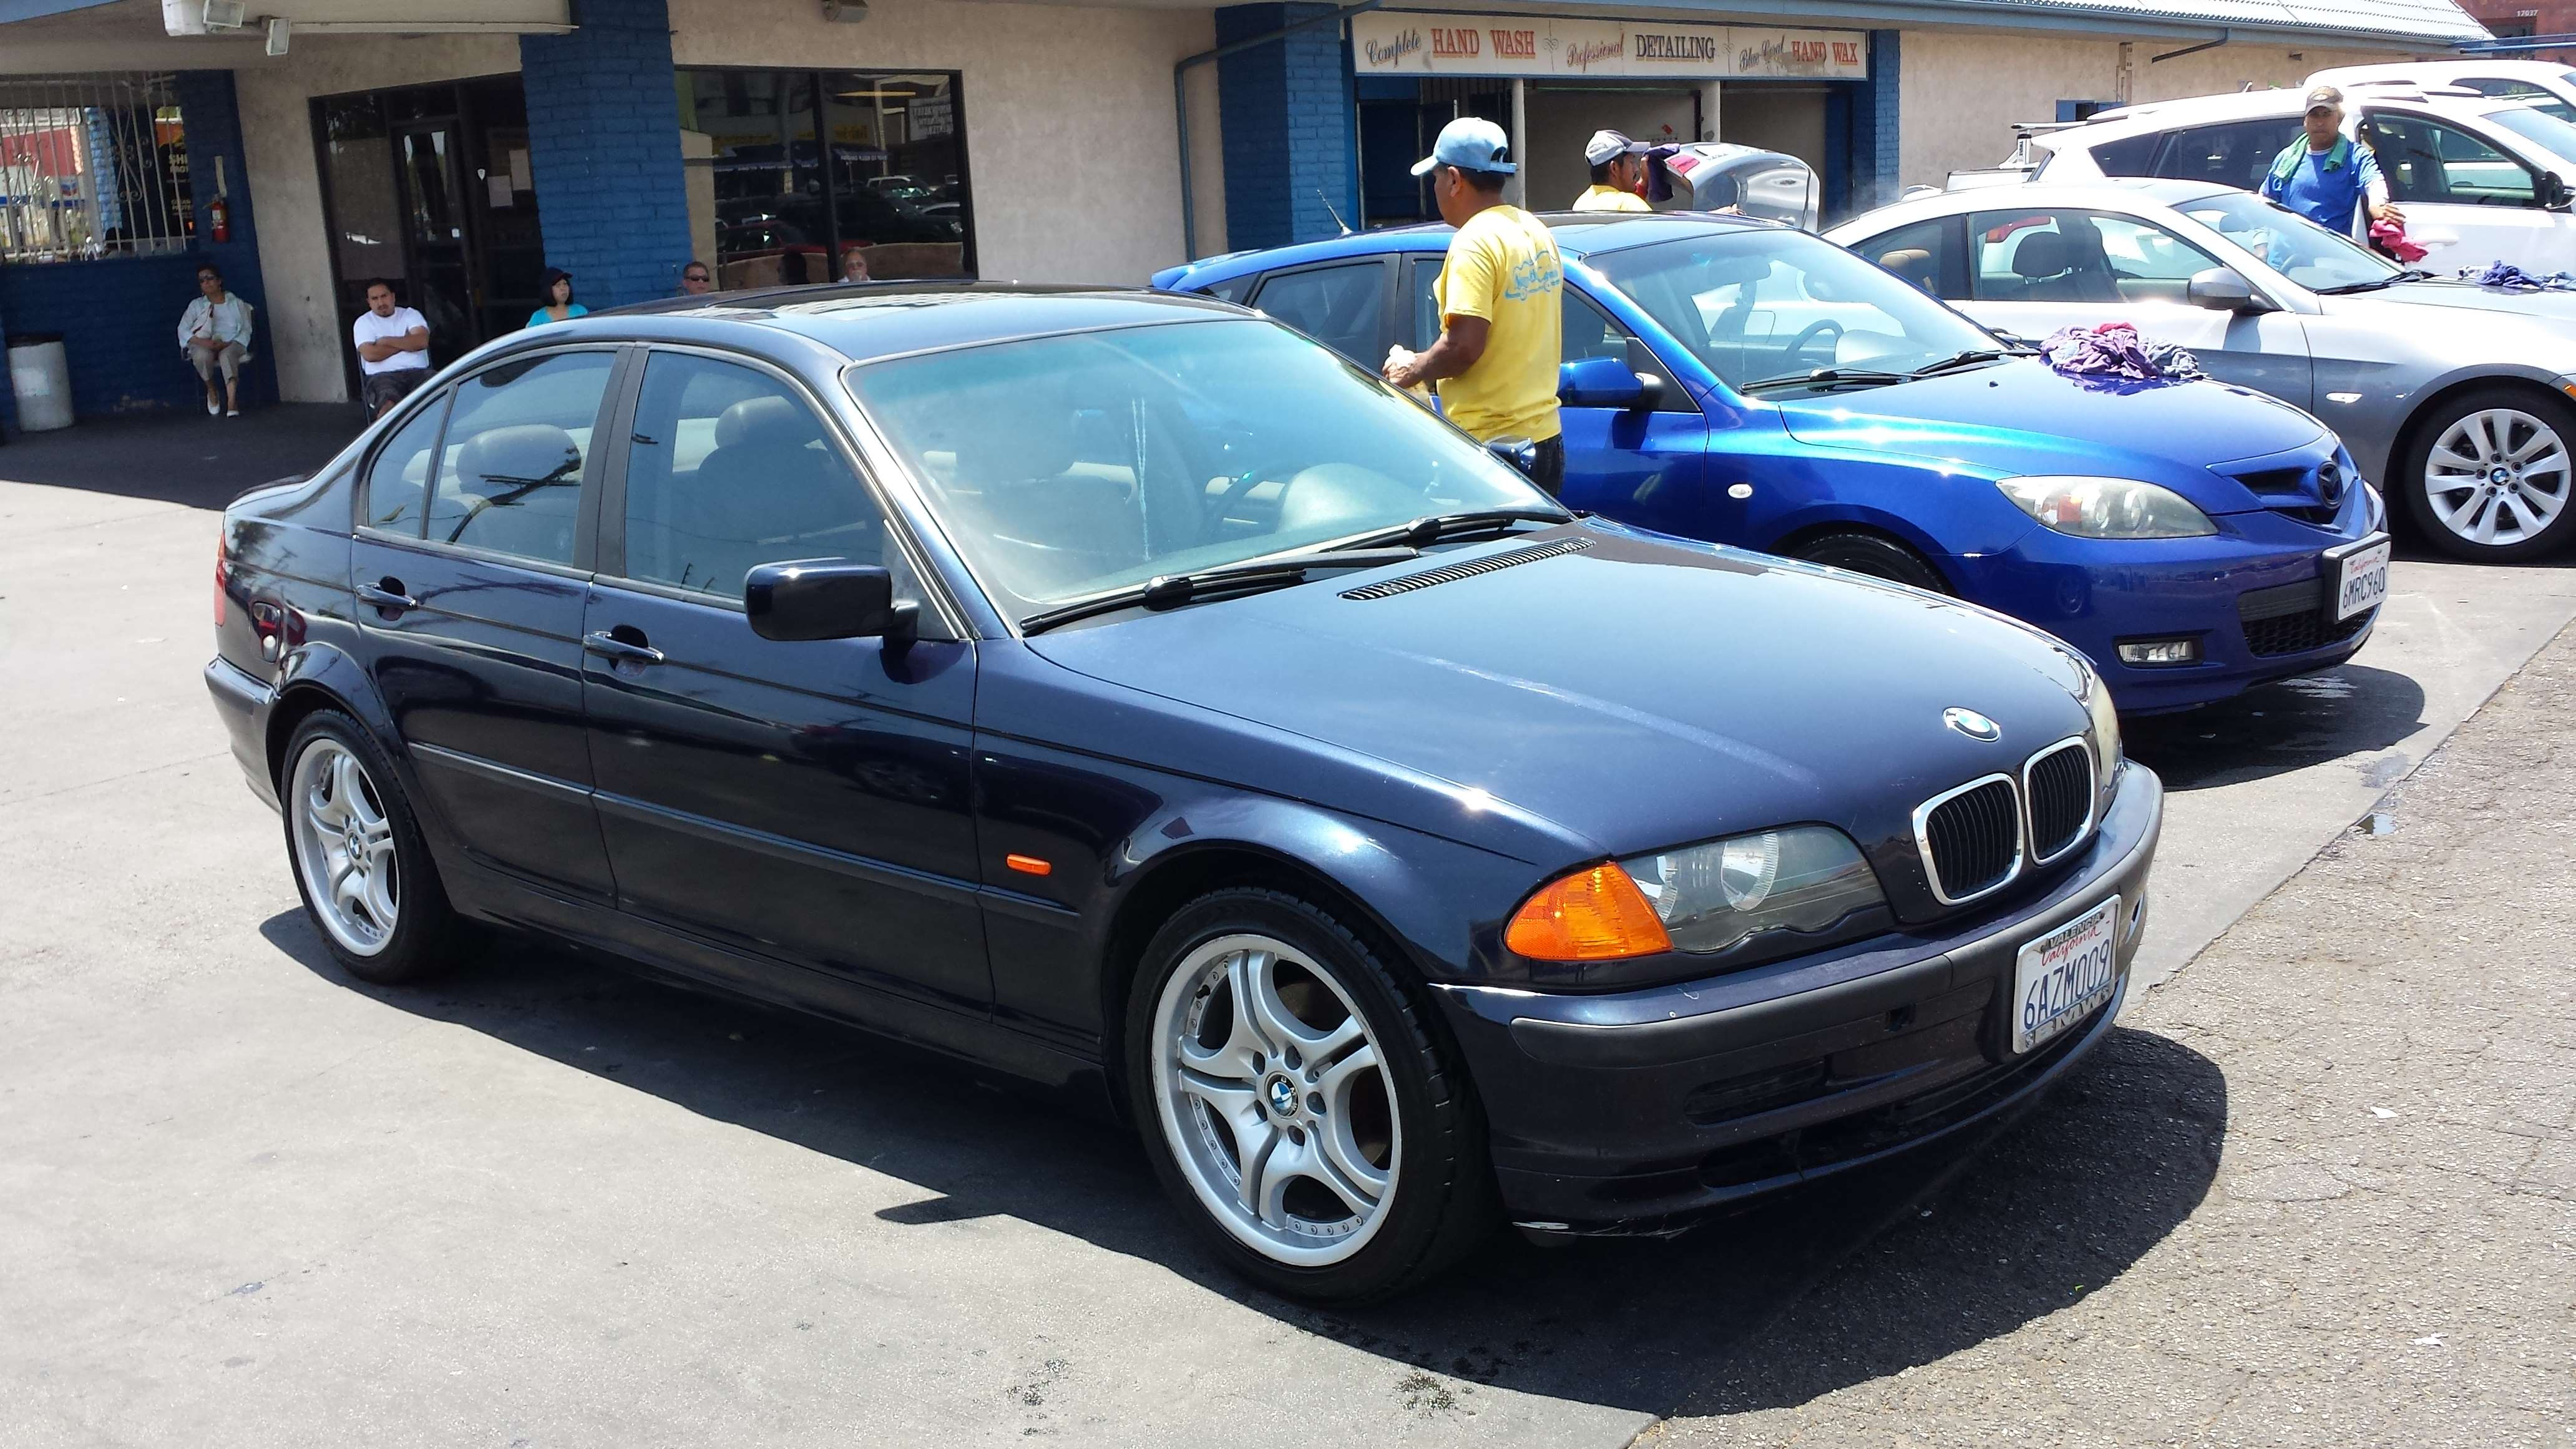 used 2000 bmw 323i for sale united car exchange. Black Bedroom Furniture Sets. Home Design Ideas